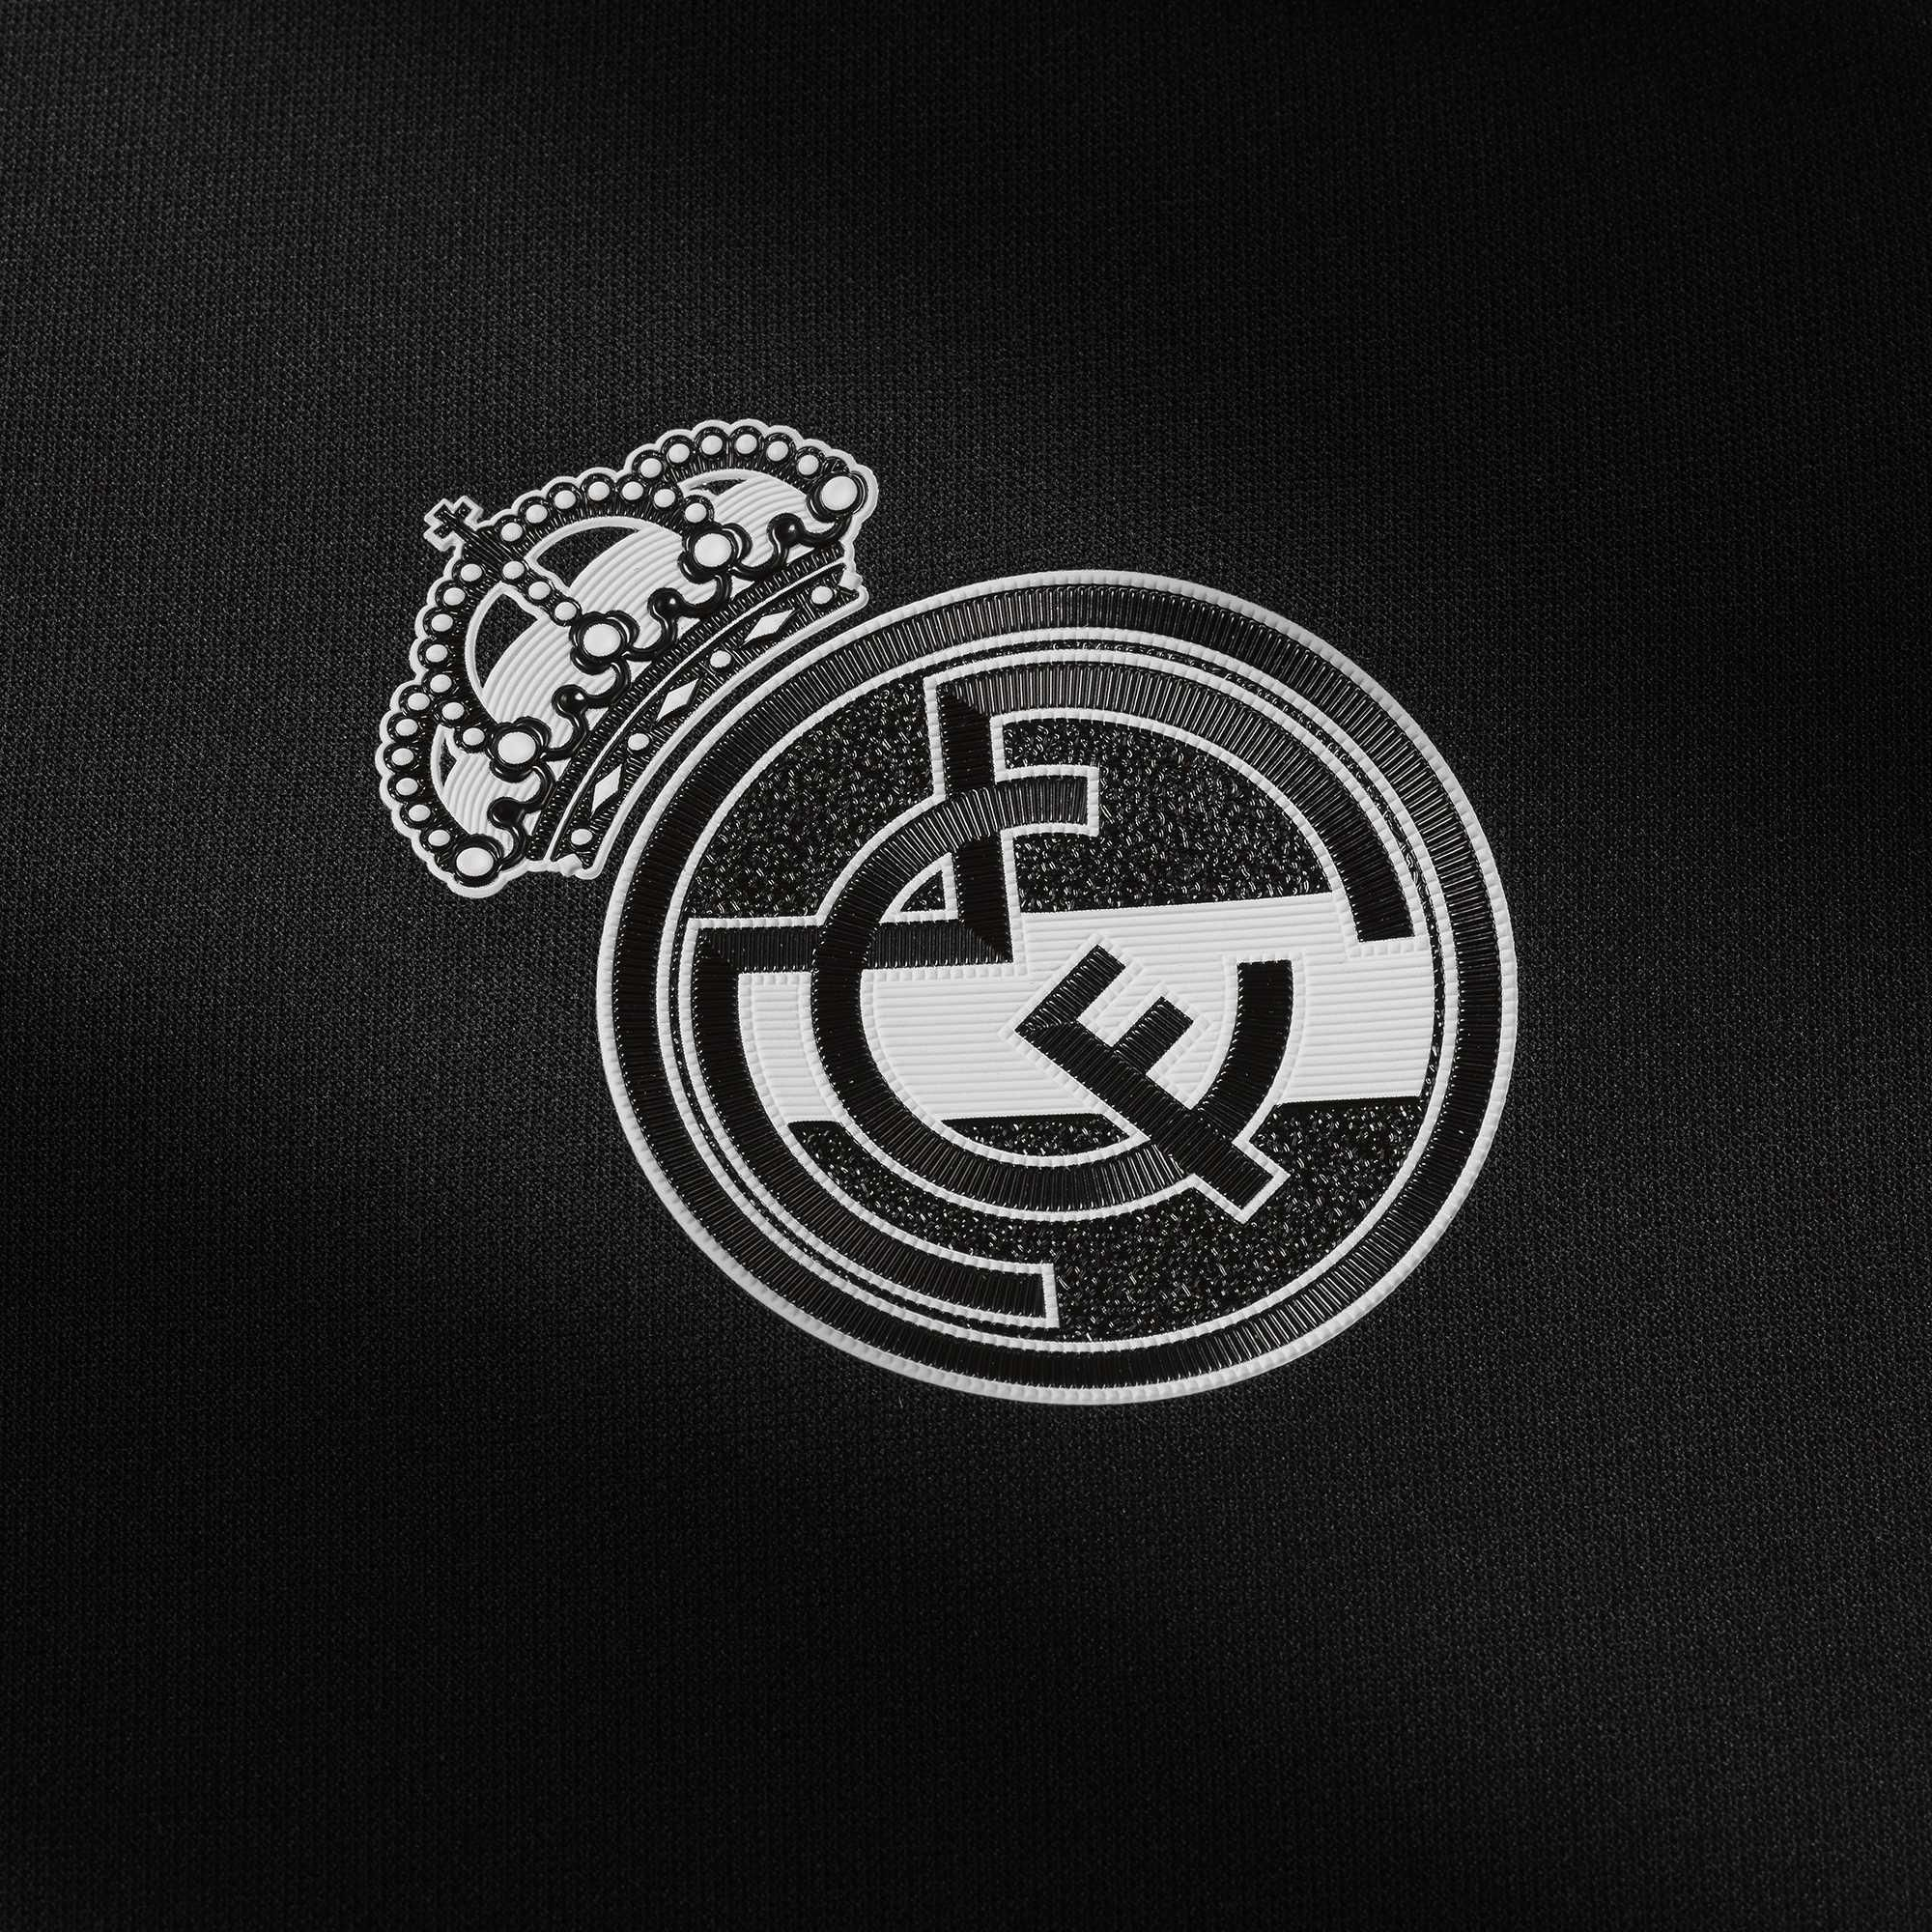 Real Madrid Wallpaper Black And White In 2020 Madrid Wallpaper Real Madrid Wallpapers Real Madrid Logo Wallpapers